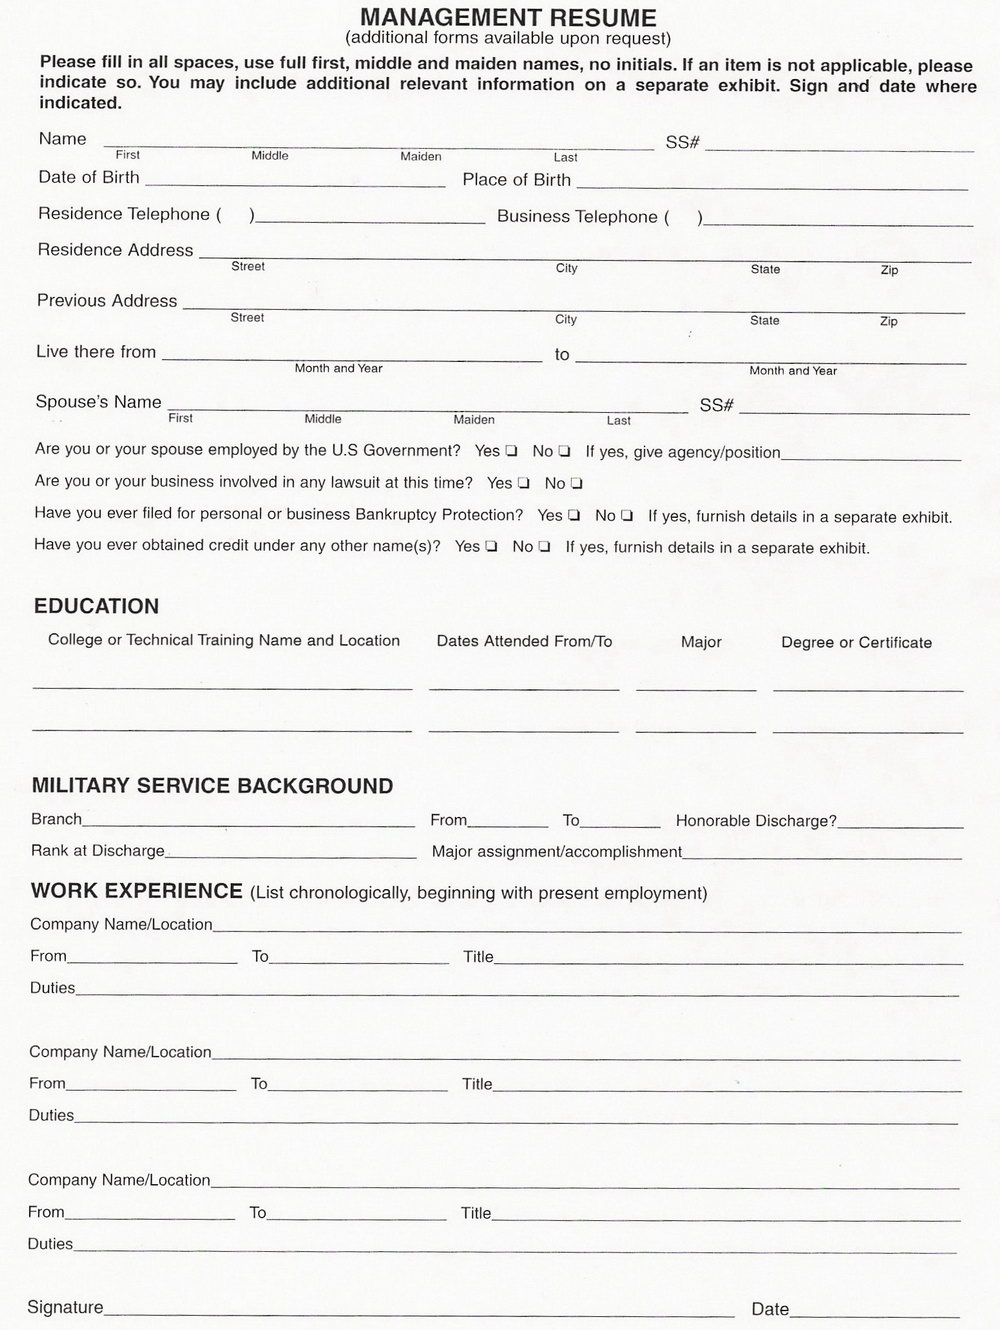 Free Blank Resume Forms